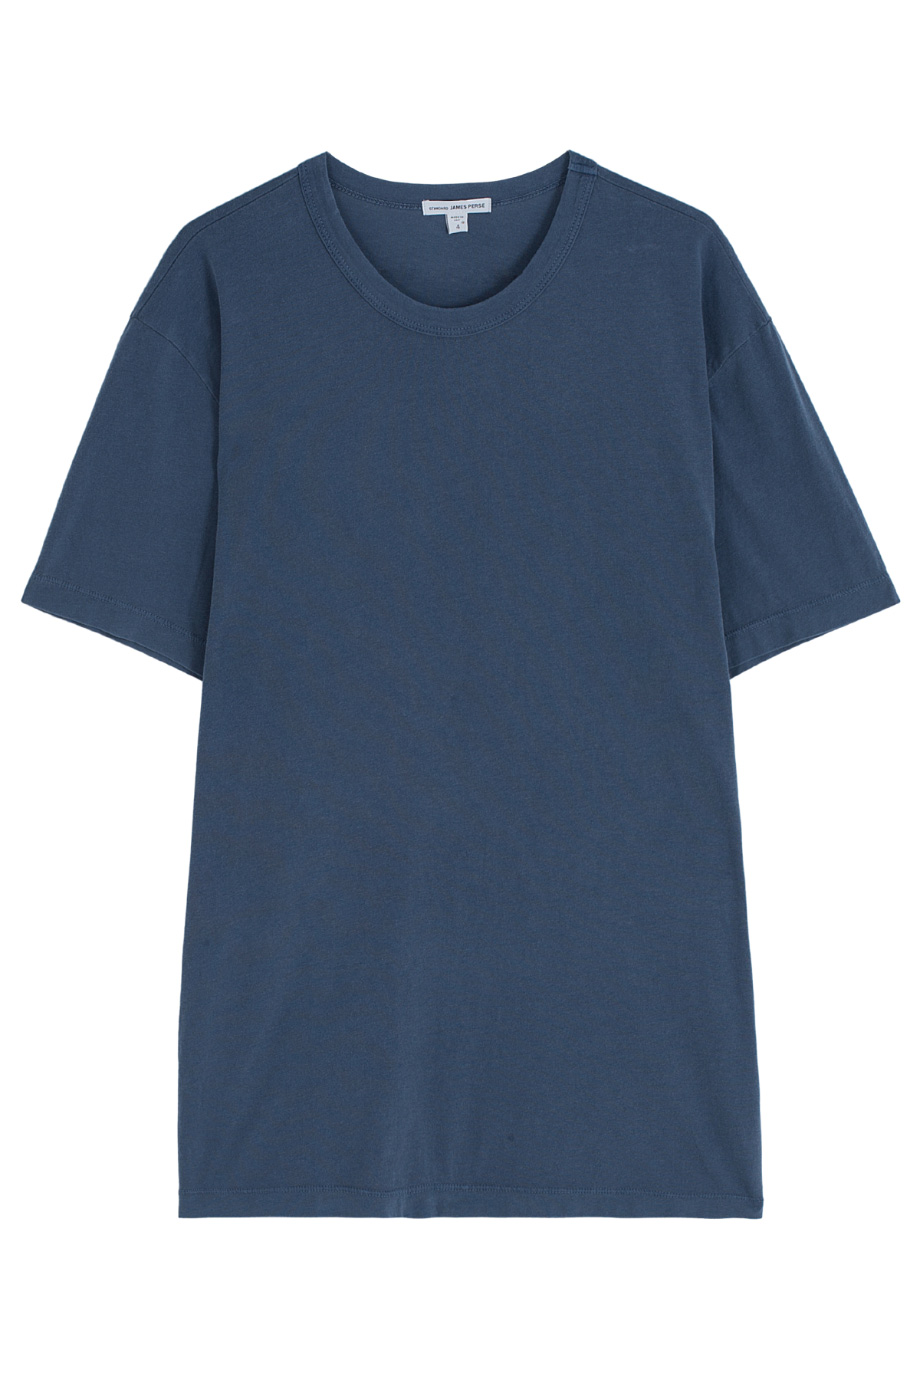 James perse round neck t shirt in blue for men lyst for James perse t shirts sale